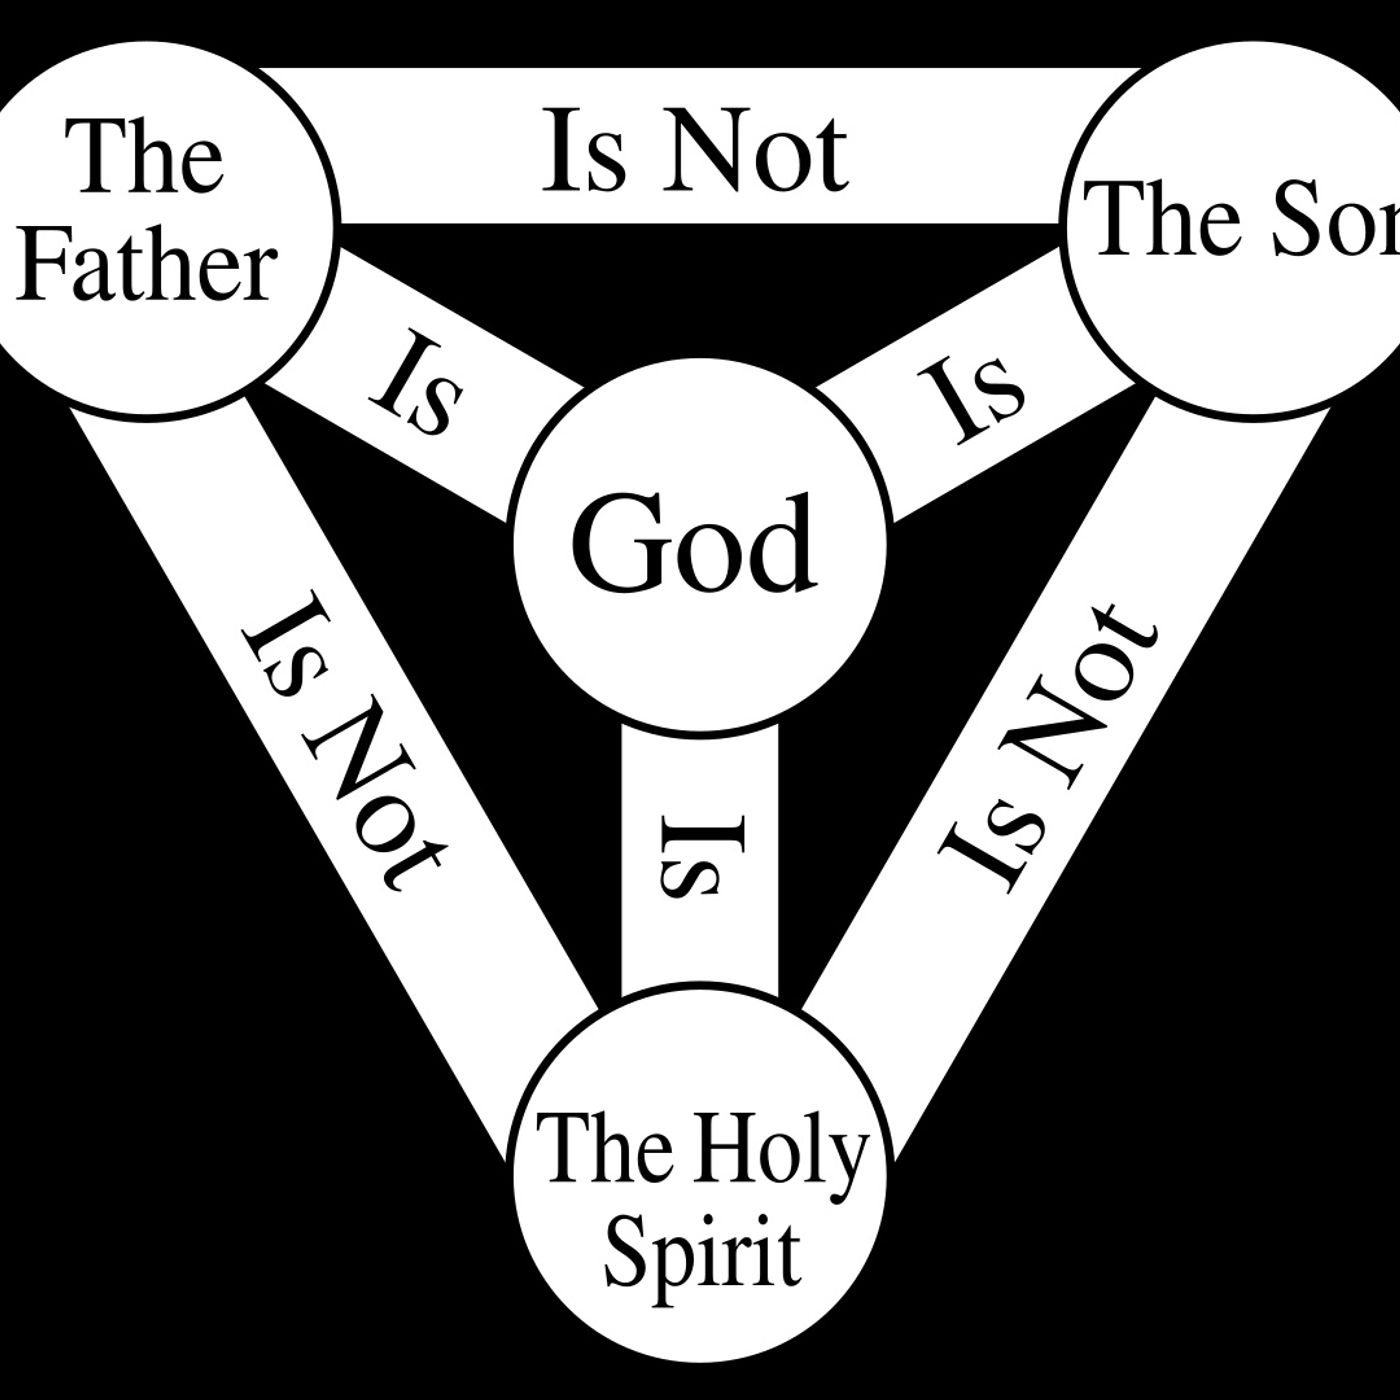 Did Steven Furtick Deny the Trinity?